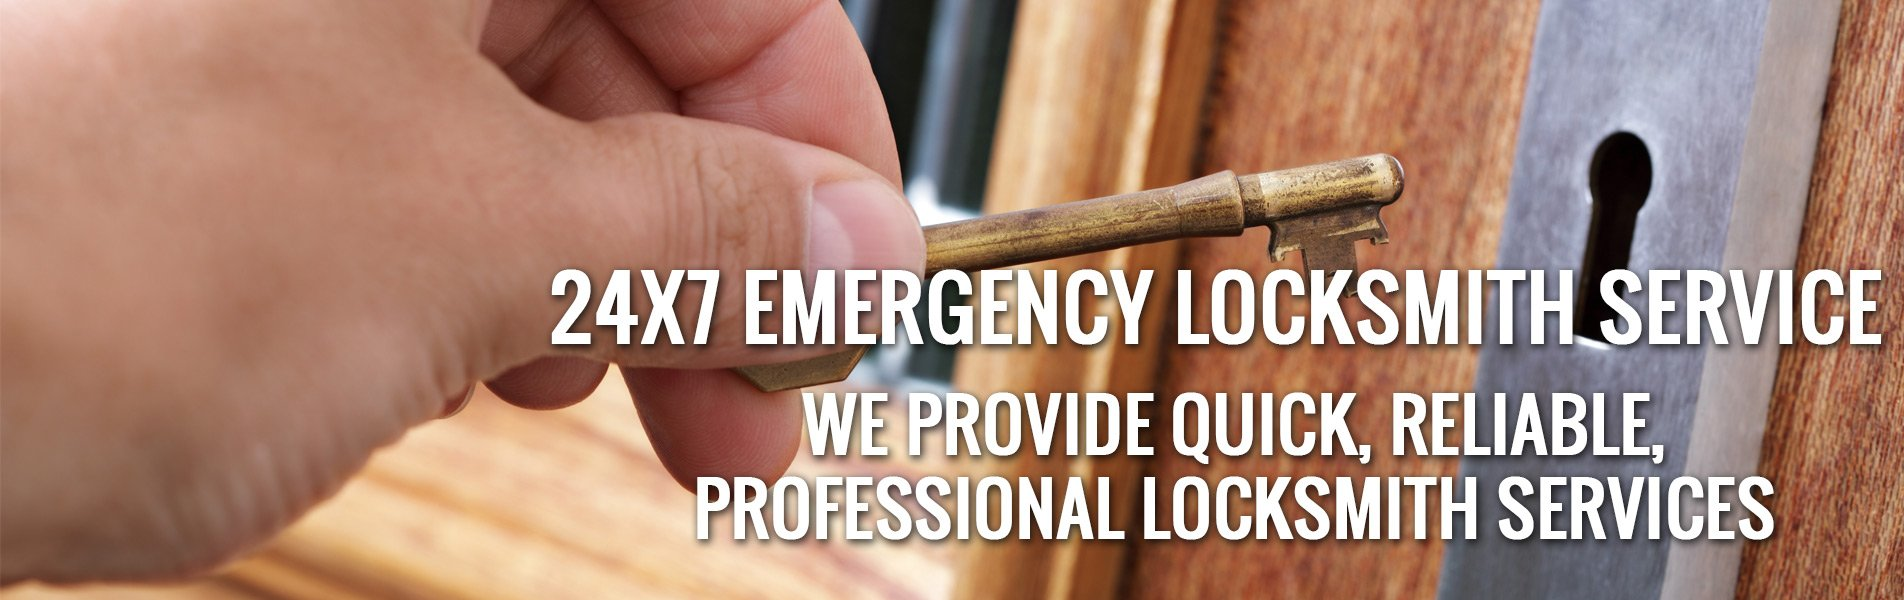 Westminster Locksmith Store, Westminster, CO 303-222-7949